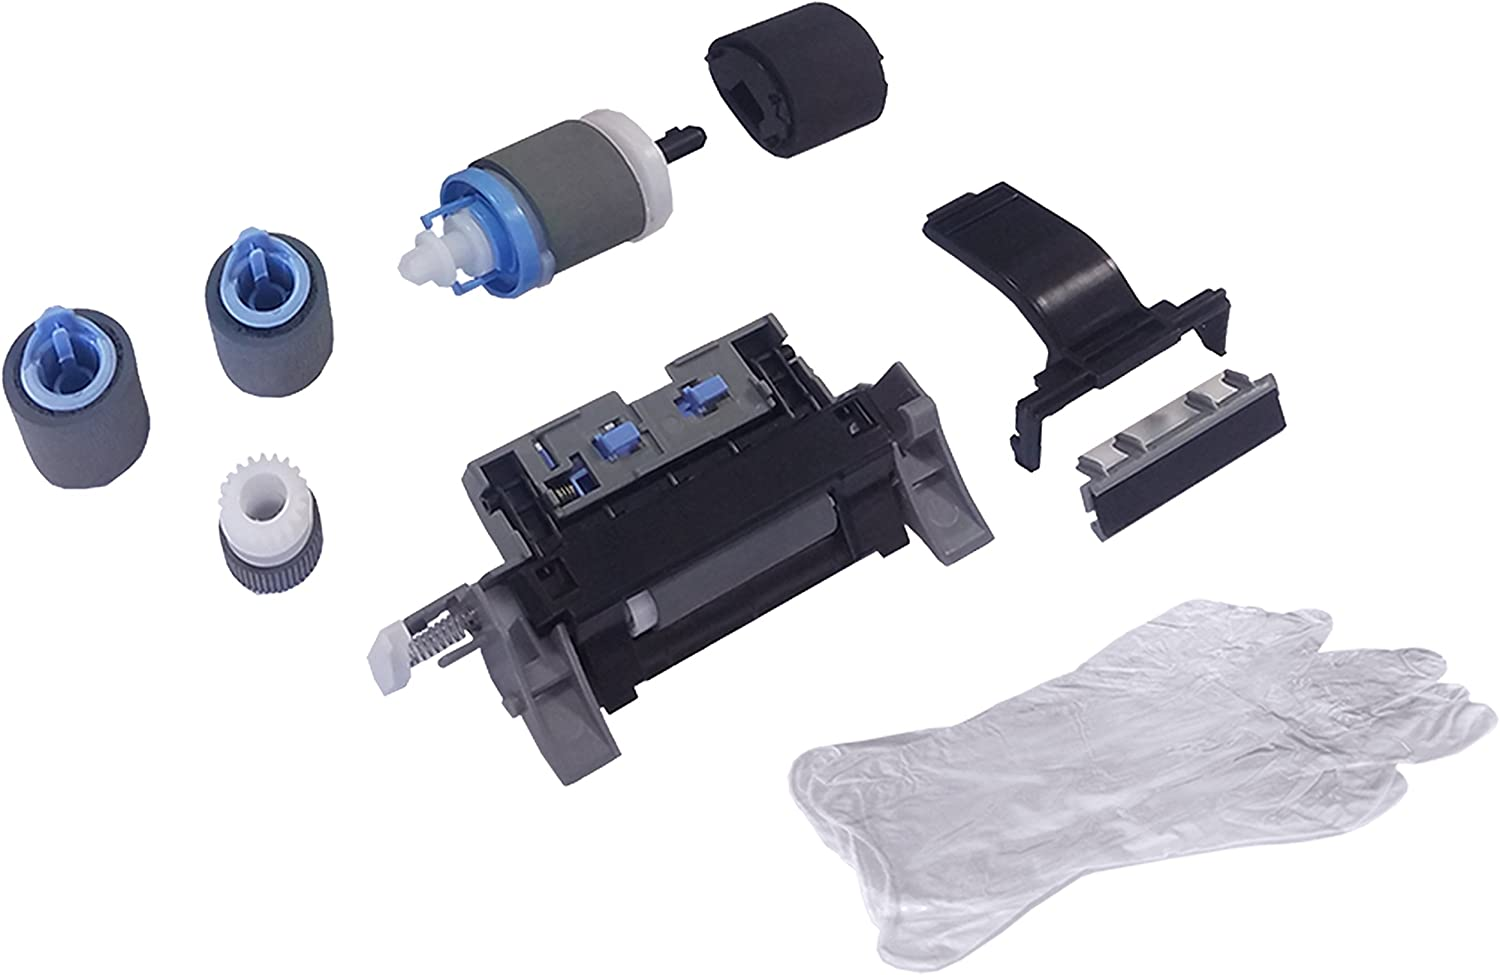 Altru Print CP5225-RK-AP Roller Kit for HP Color Laserjet CP5225 / CP5525 / M750 / M775 Includes Rollers for Tray 1/2 / 3